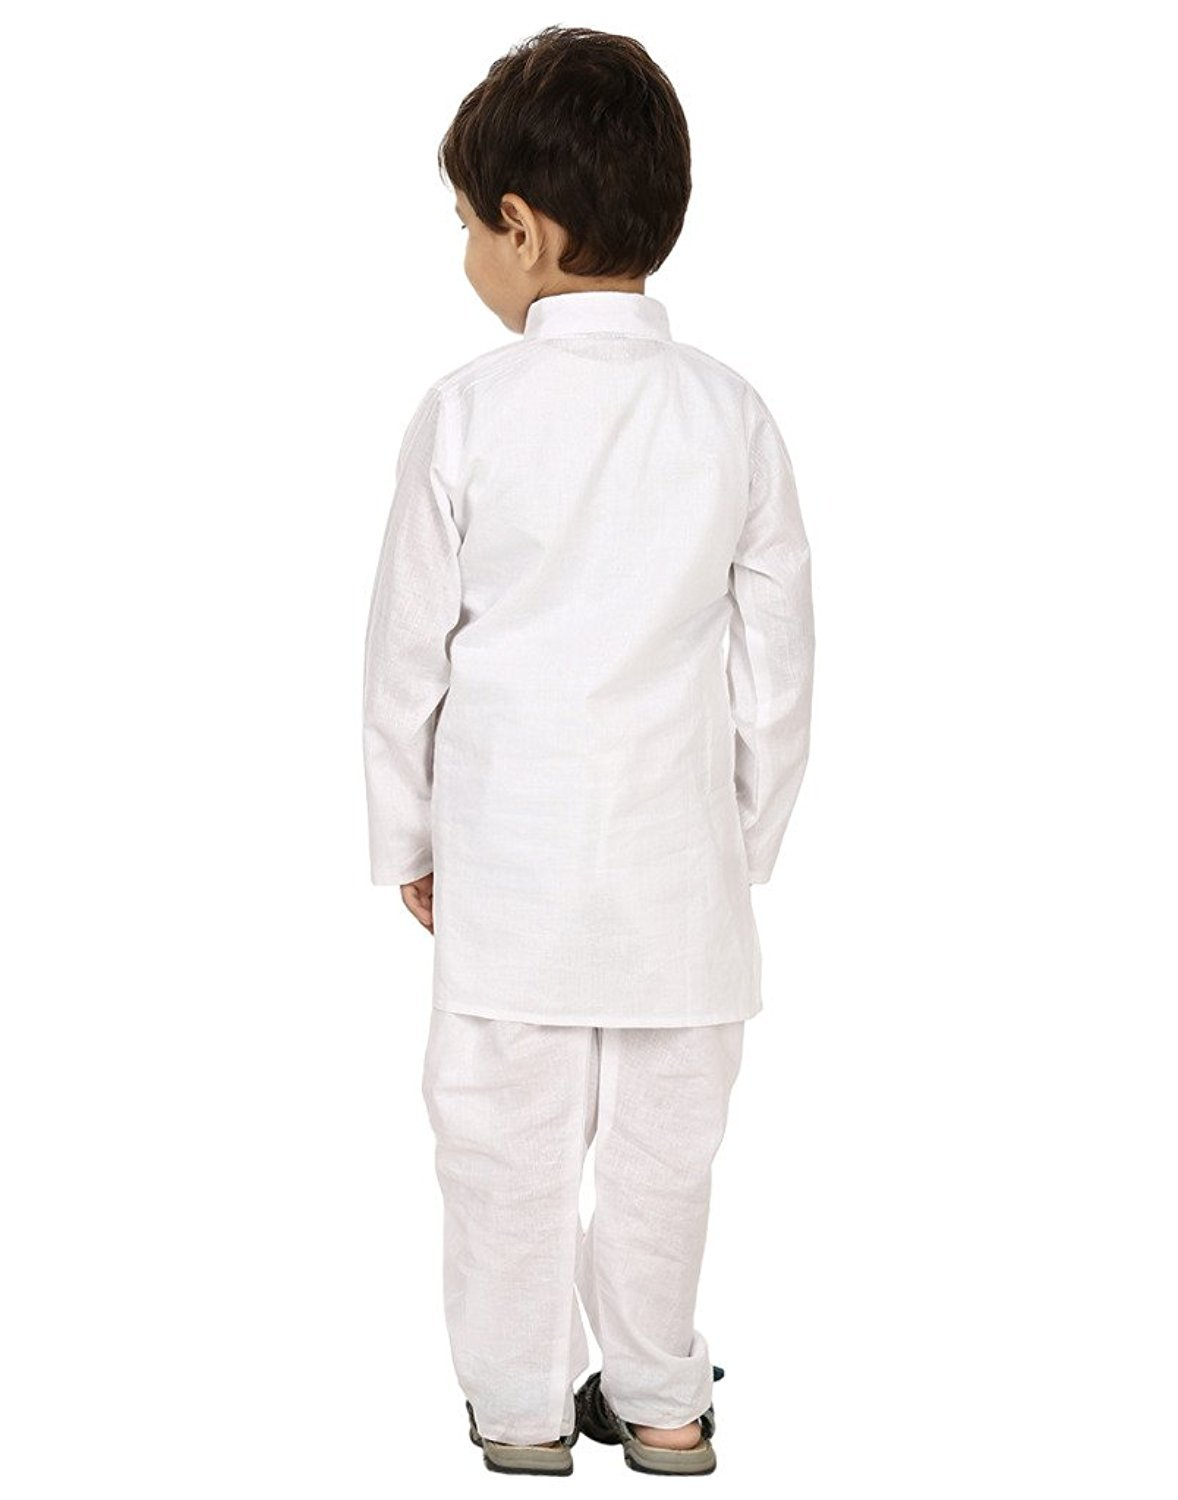 FOCIL Festival Season Special White Cotton Kurta & Pyjama Pant Set for Kids by FOCIL (Image #4)